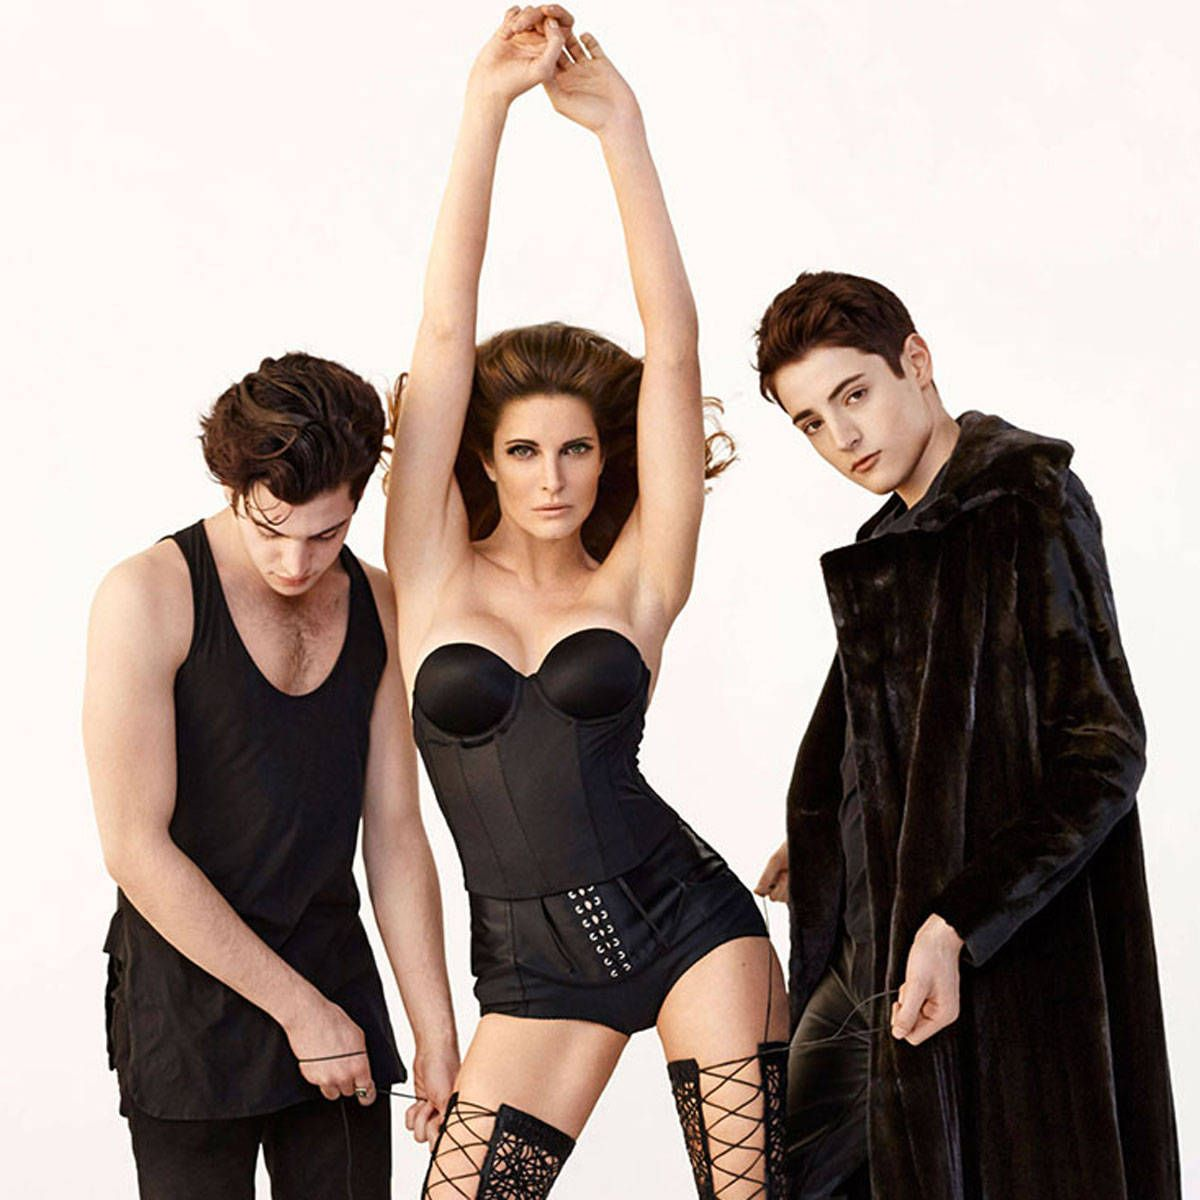 Stephanie Seymour 2014 Interview Stephanie Seymour Quotes About Her Sons And Axel Rose